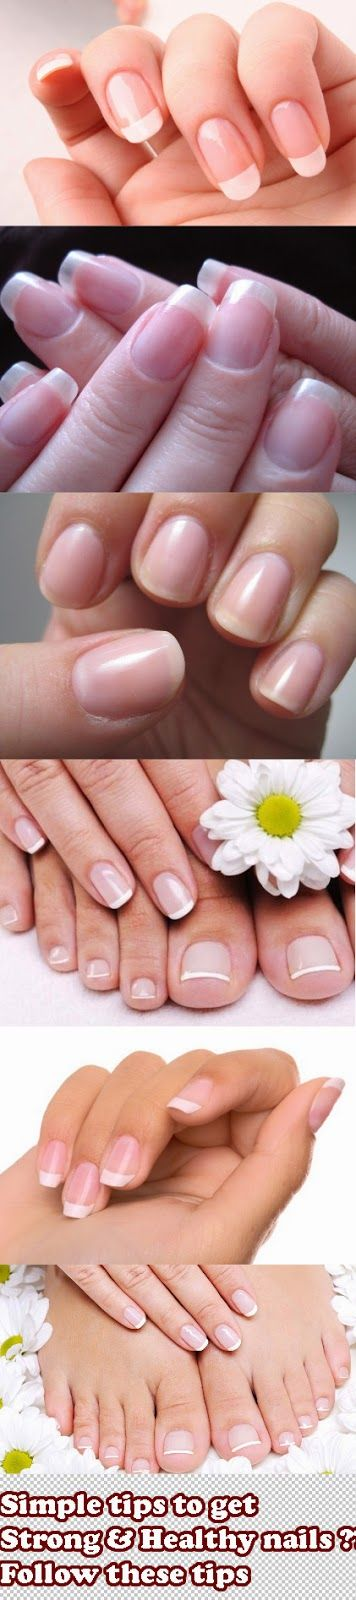 Simple tips you get strong and Healthy nails ?? Follow these tips | Tips Zone